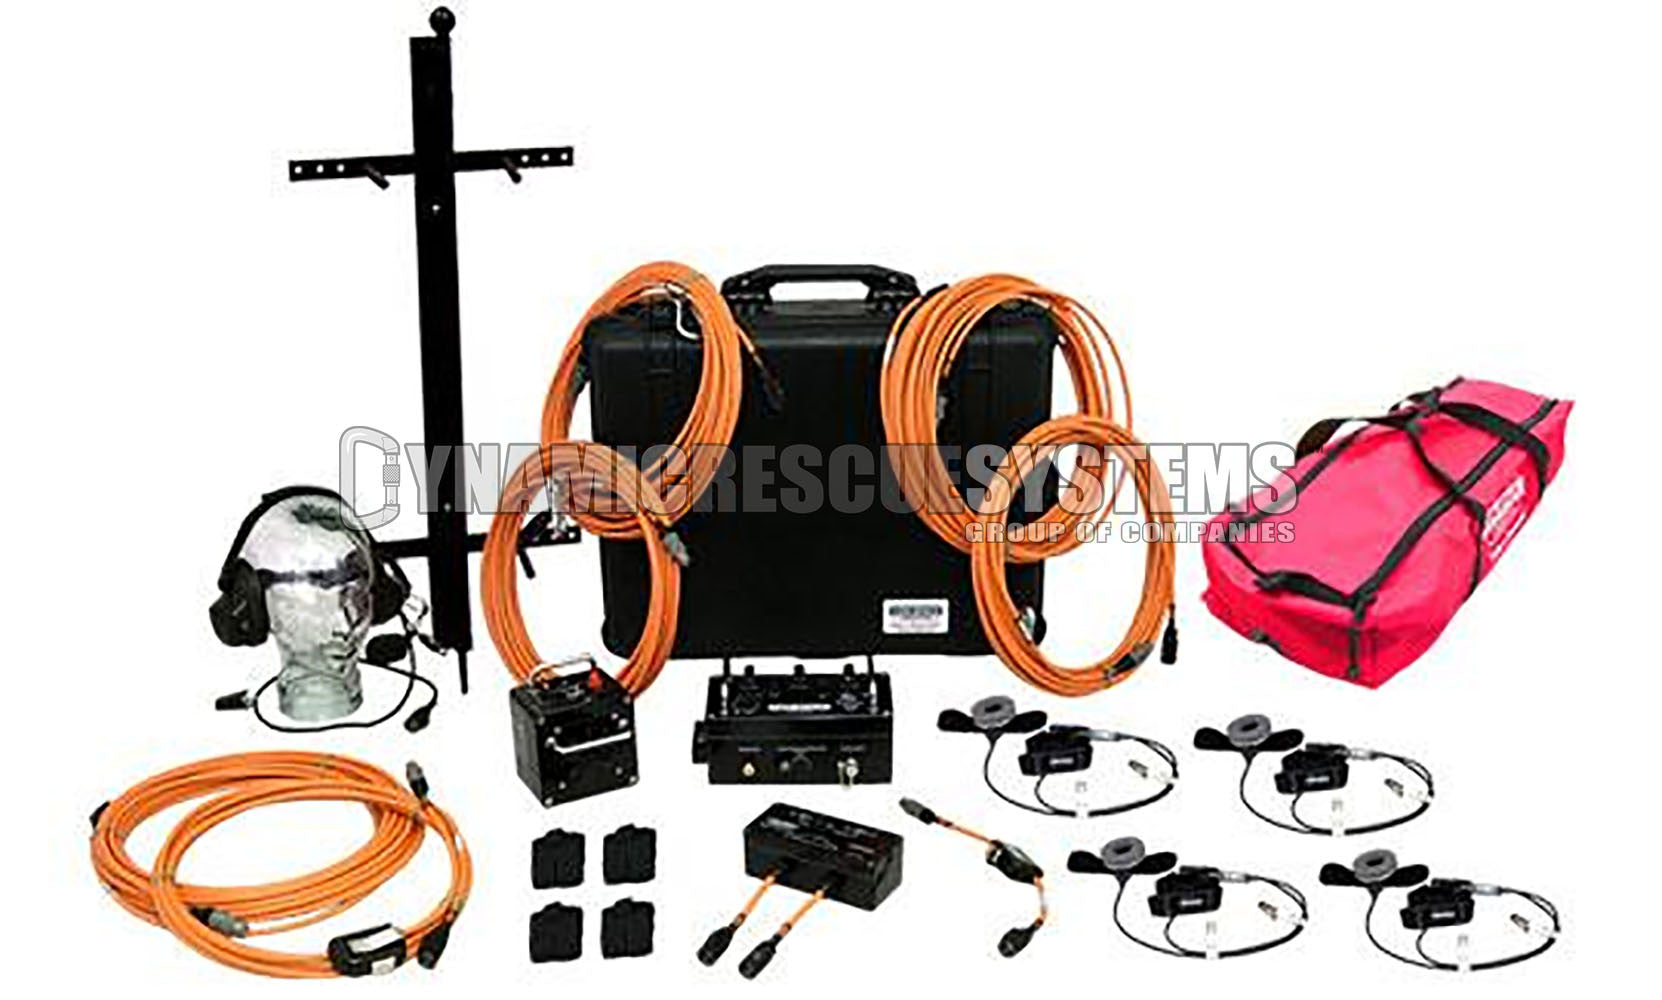 Pre-Packaged Communications Kit, 4 Rescuer - Dynamic Rescue - Dynamic Rescue Systems - Dynamic Rescue